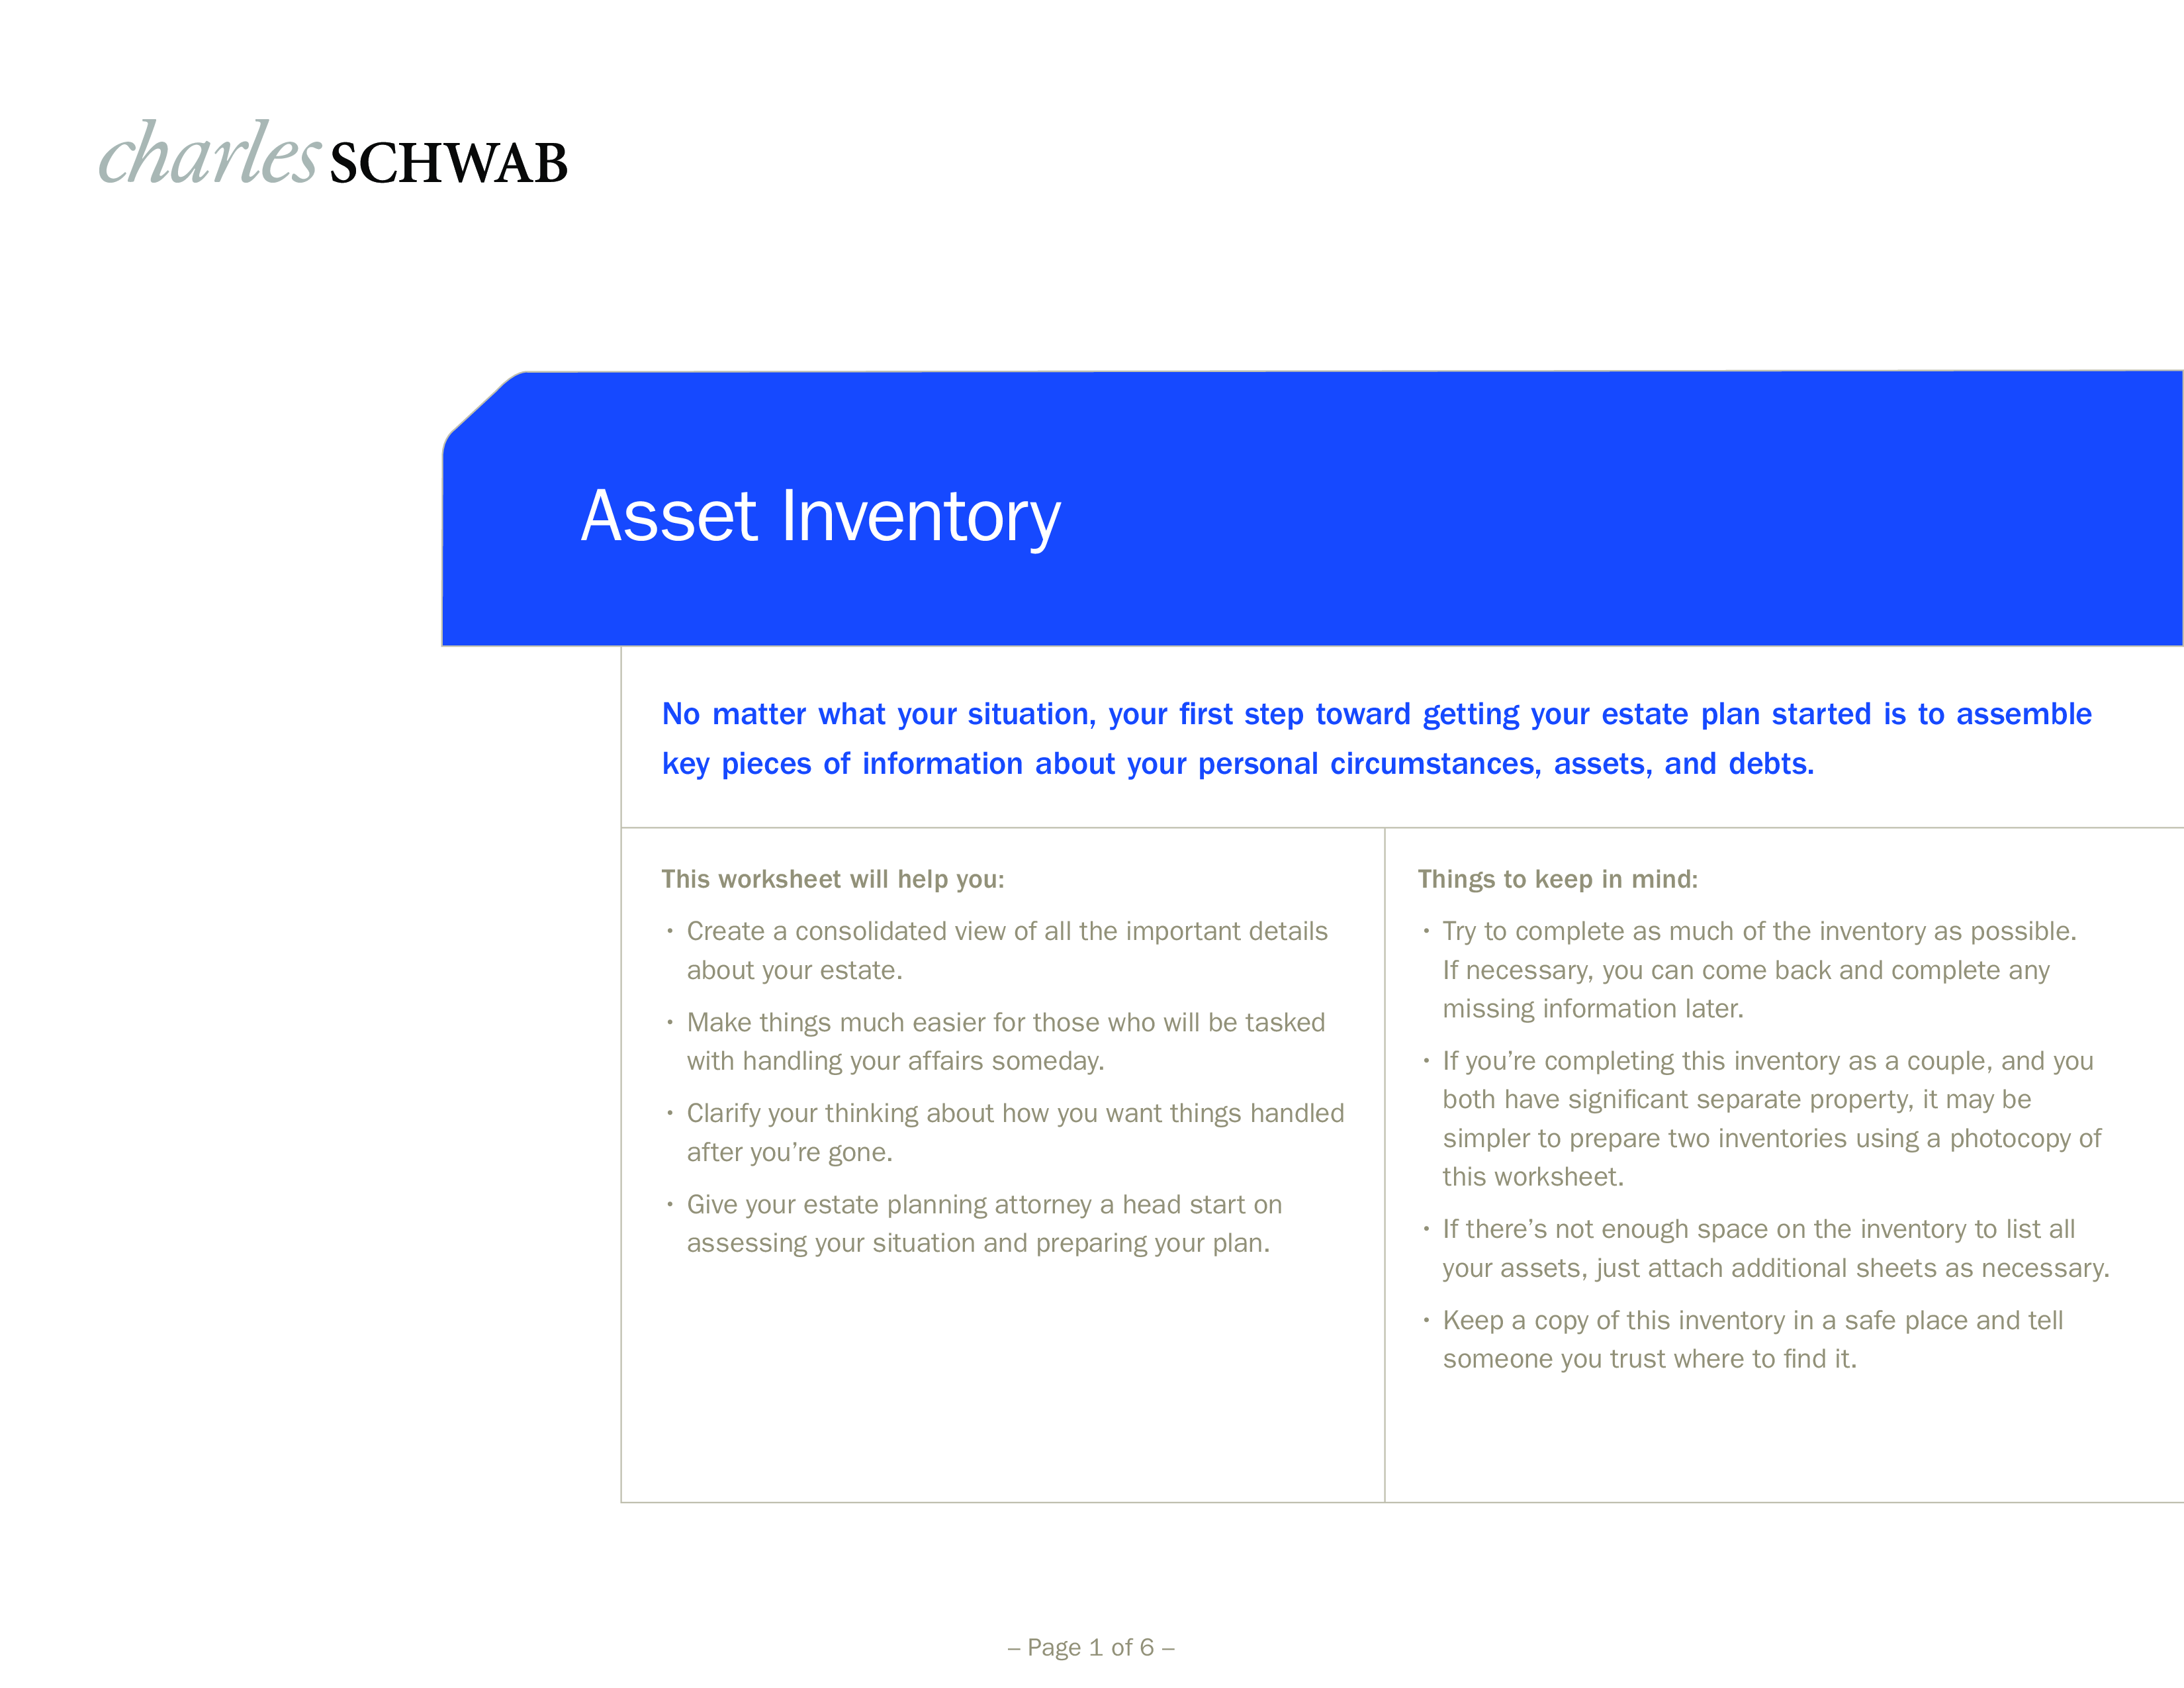 Free business asset inventory templates at allbusinesstemplates business asset inventory main image download template maxwellsz